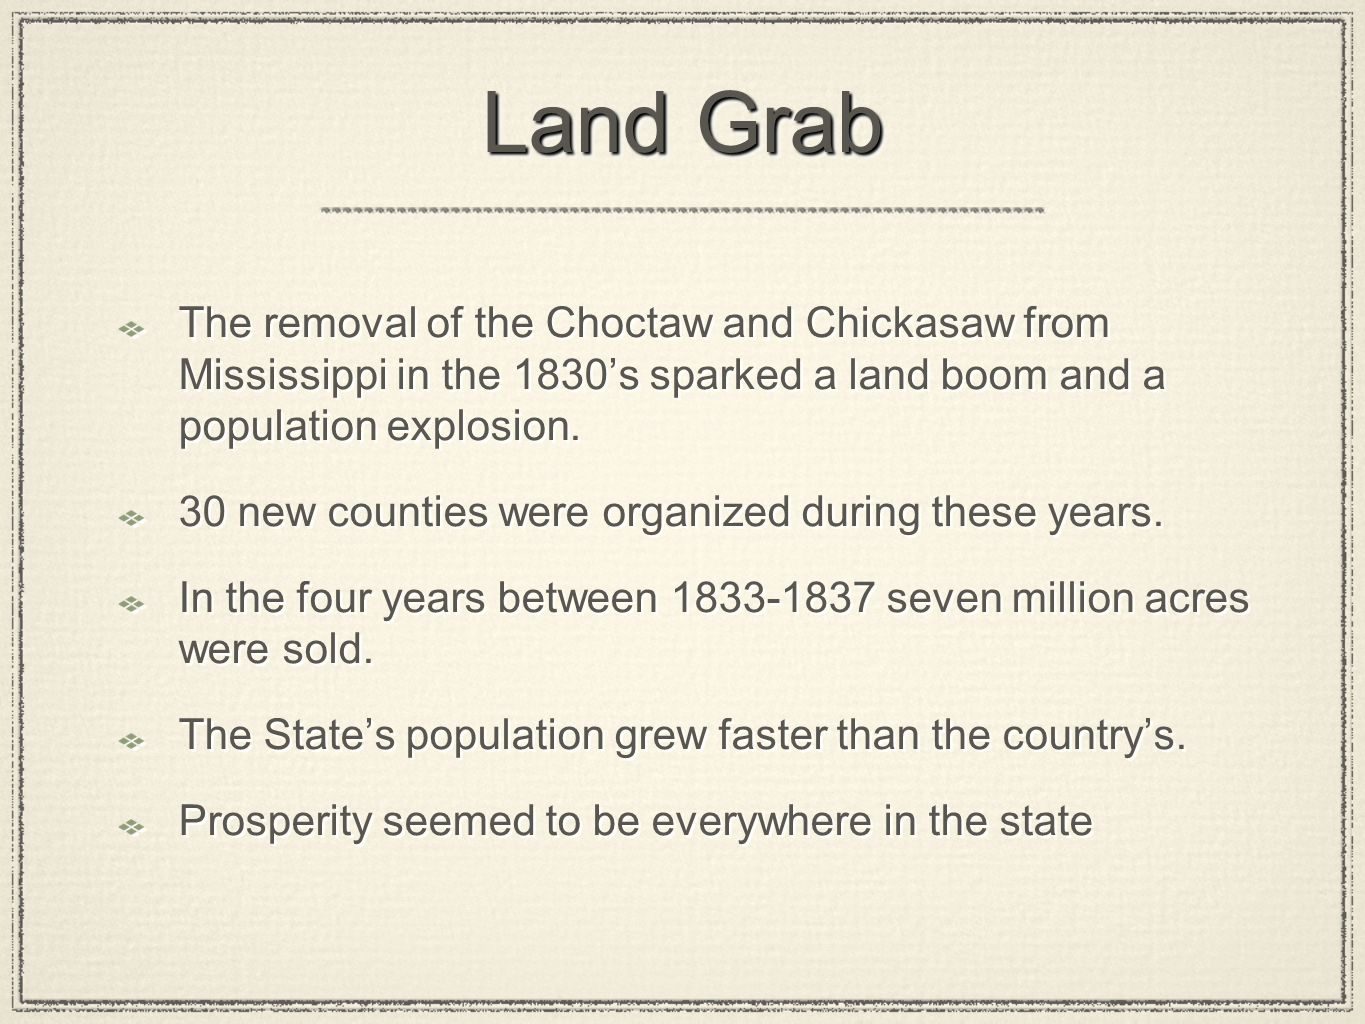 Land Grab The removal of the Choctaw and Chickasaw from Mississippi in the 1830's sparked a land boom and a population explosion.